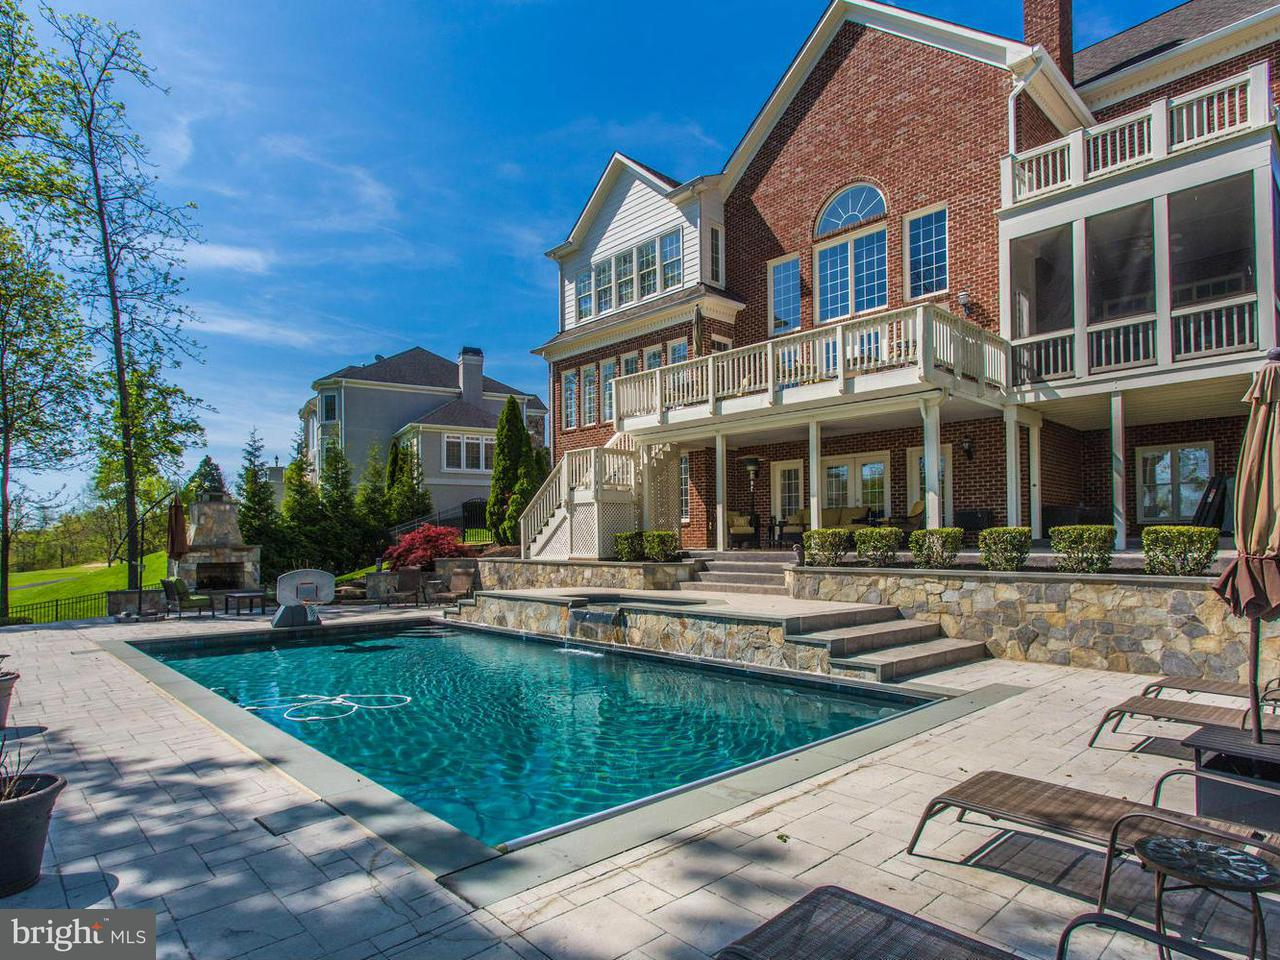 Single Family Home for Sale at 15858 SPYGLASS HILL LOOP 15858 SPYGLASS HILL LOOP Gainesville, Virginia 20155 United States